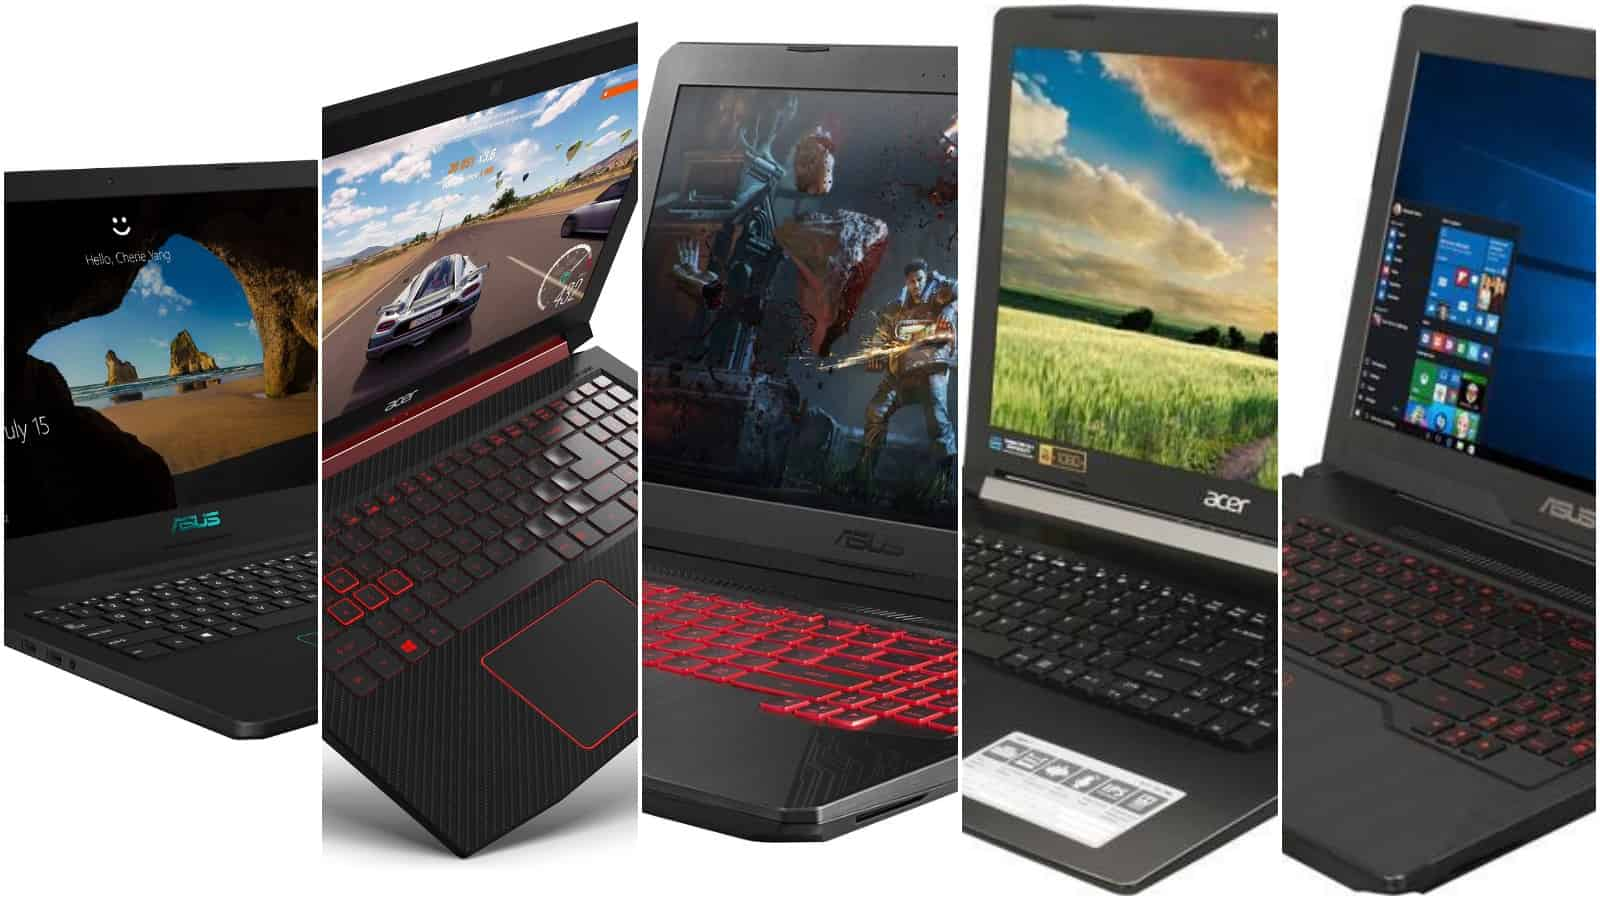 10 Best Gaming Laptops Under 800 Of 2019 Voxel Reviews